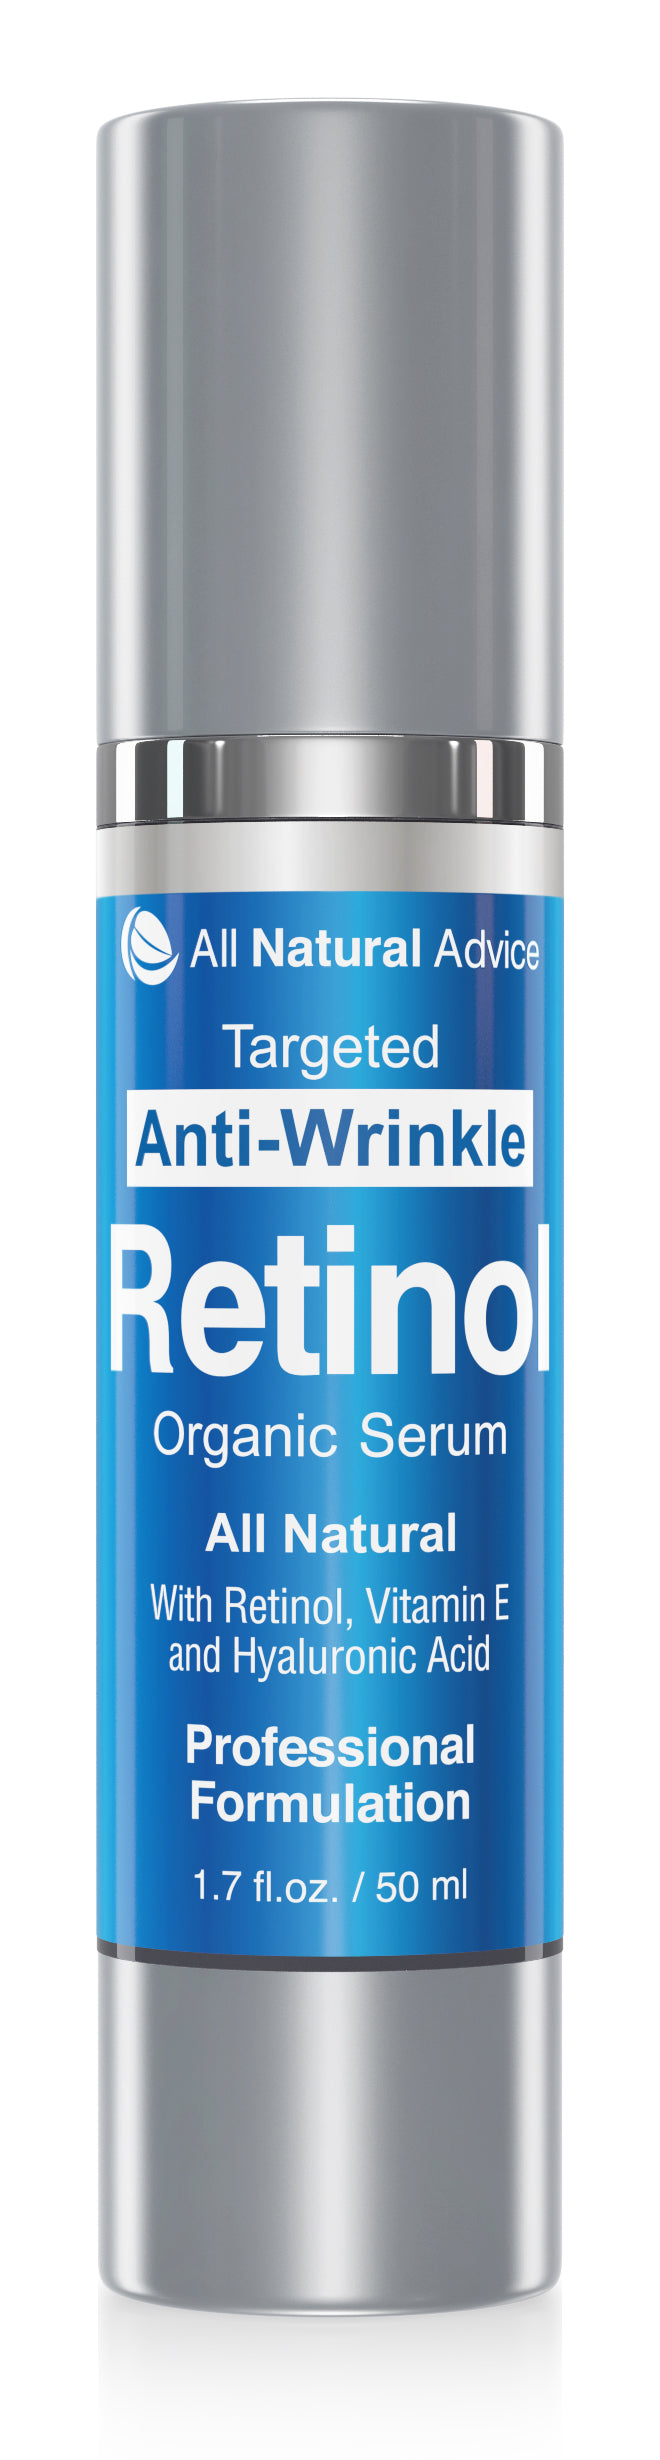 All Natural Advice  RETINOL SERUM with Hyaluronic Acid